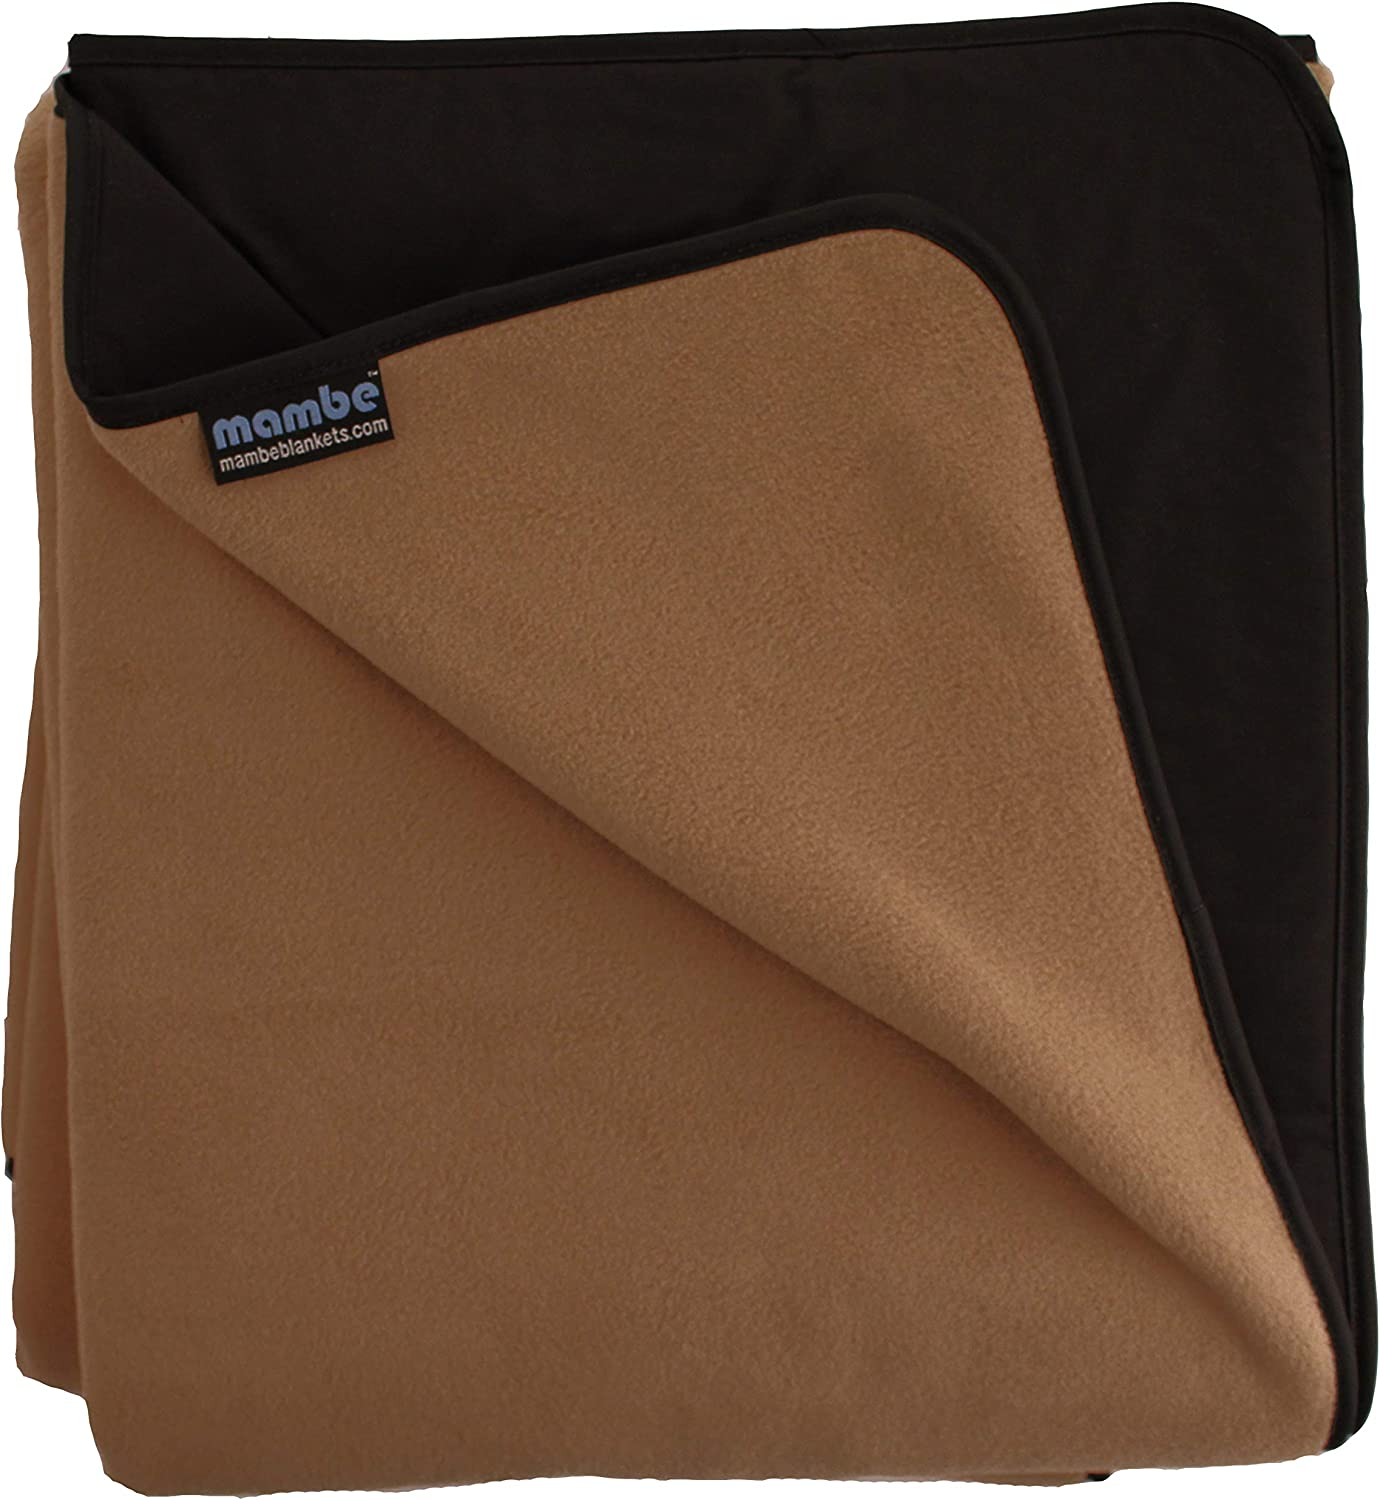 Mambe Large Essential 100% Waterproof Windproof Stadium, Camping, Picnic and Outdoor Blanket Made in The USA